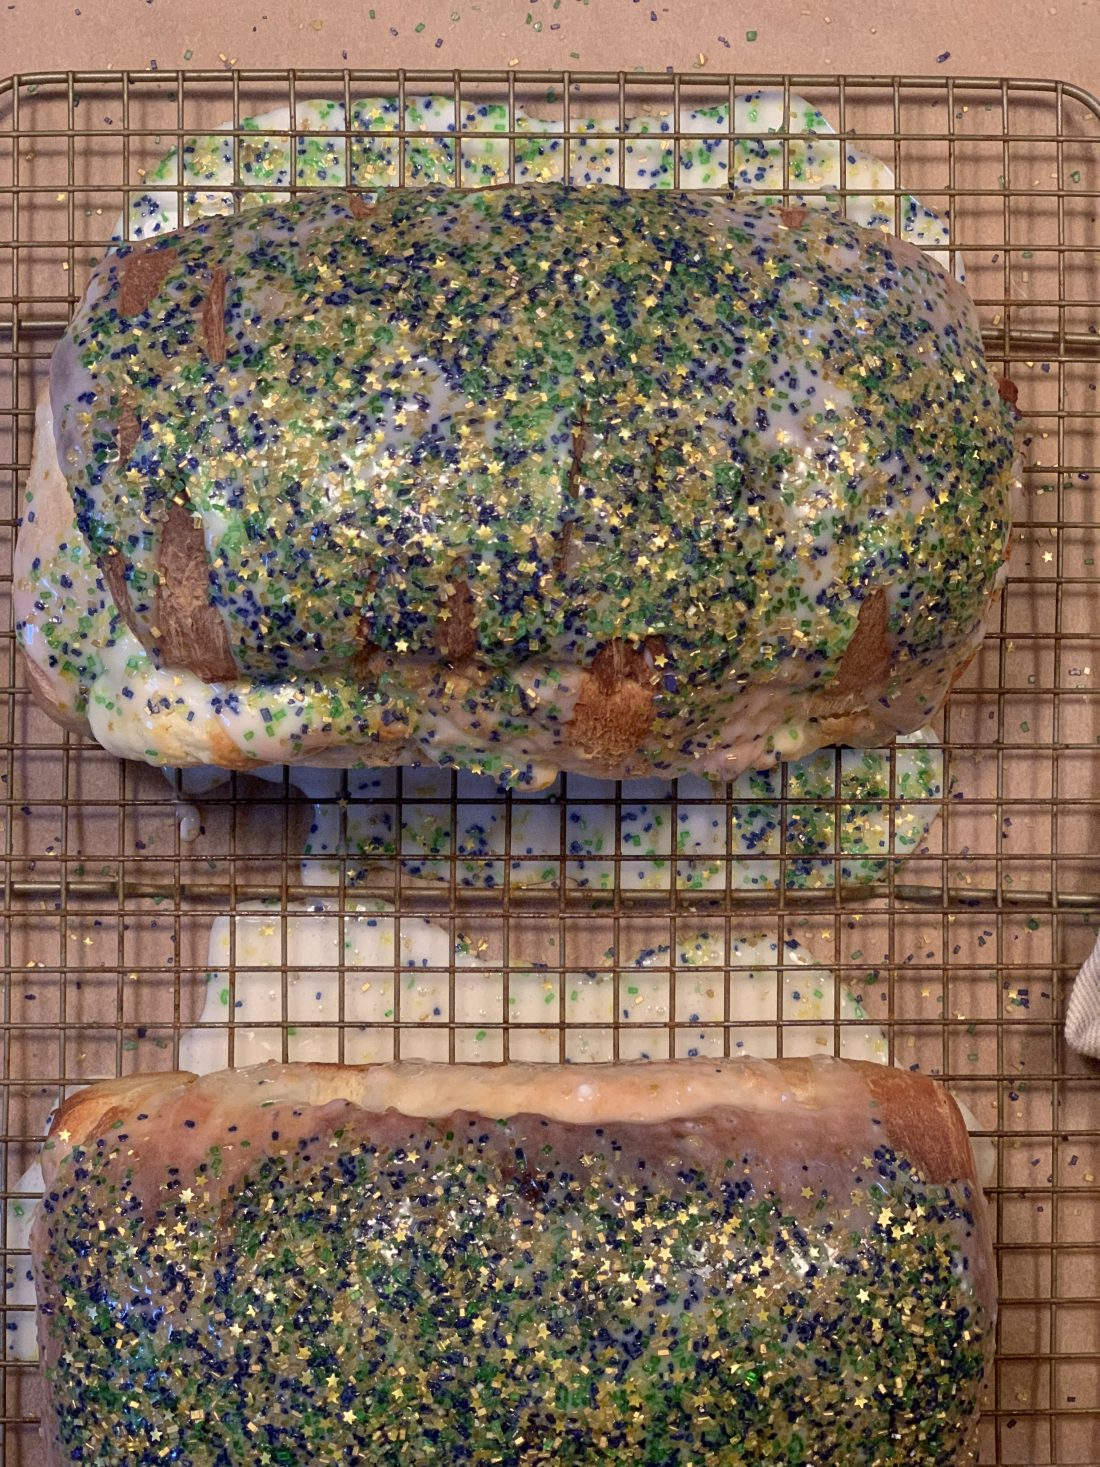 Break Bread on Mardi Gras Day with This Twist on King Cake